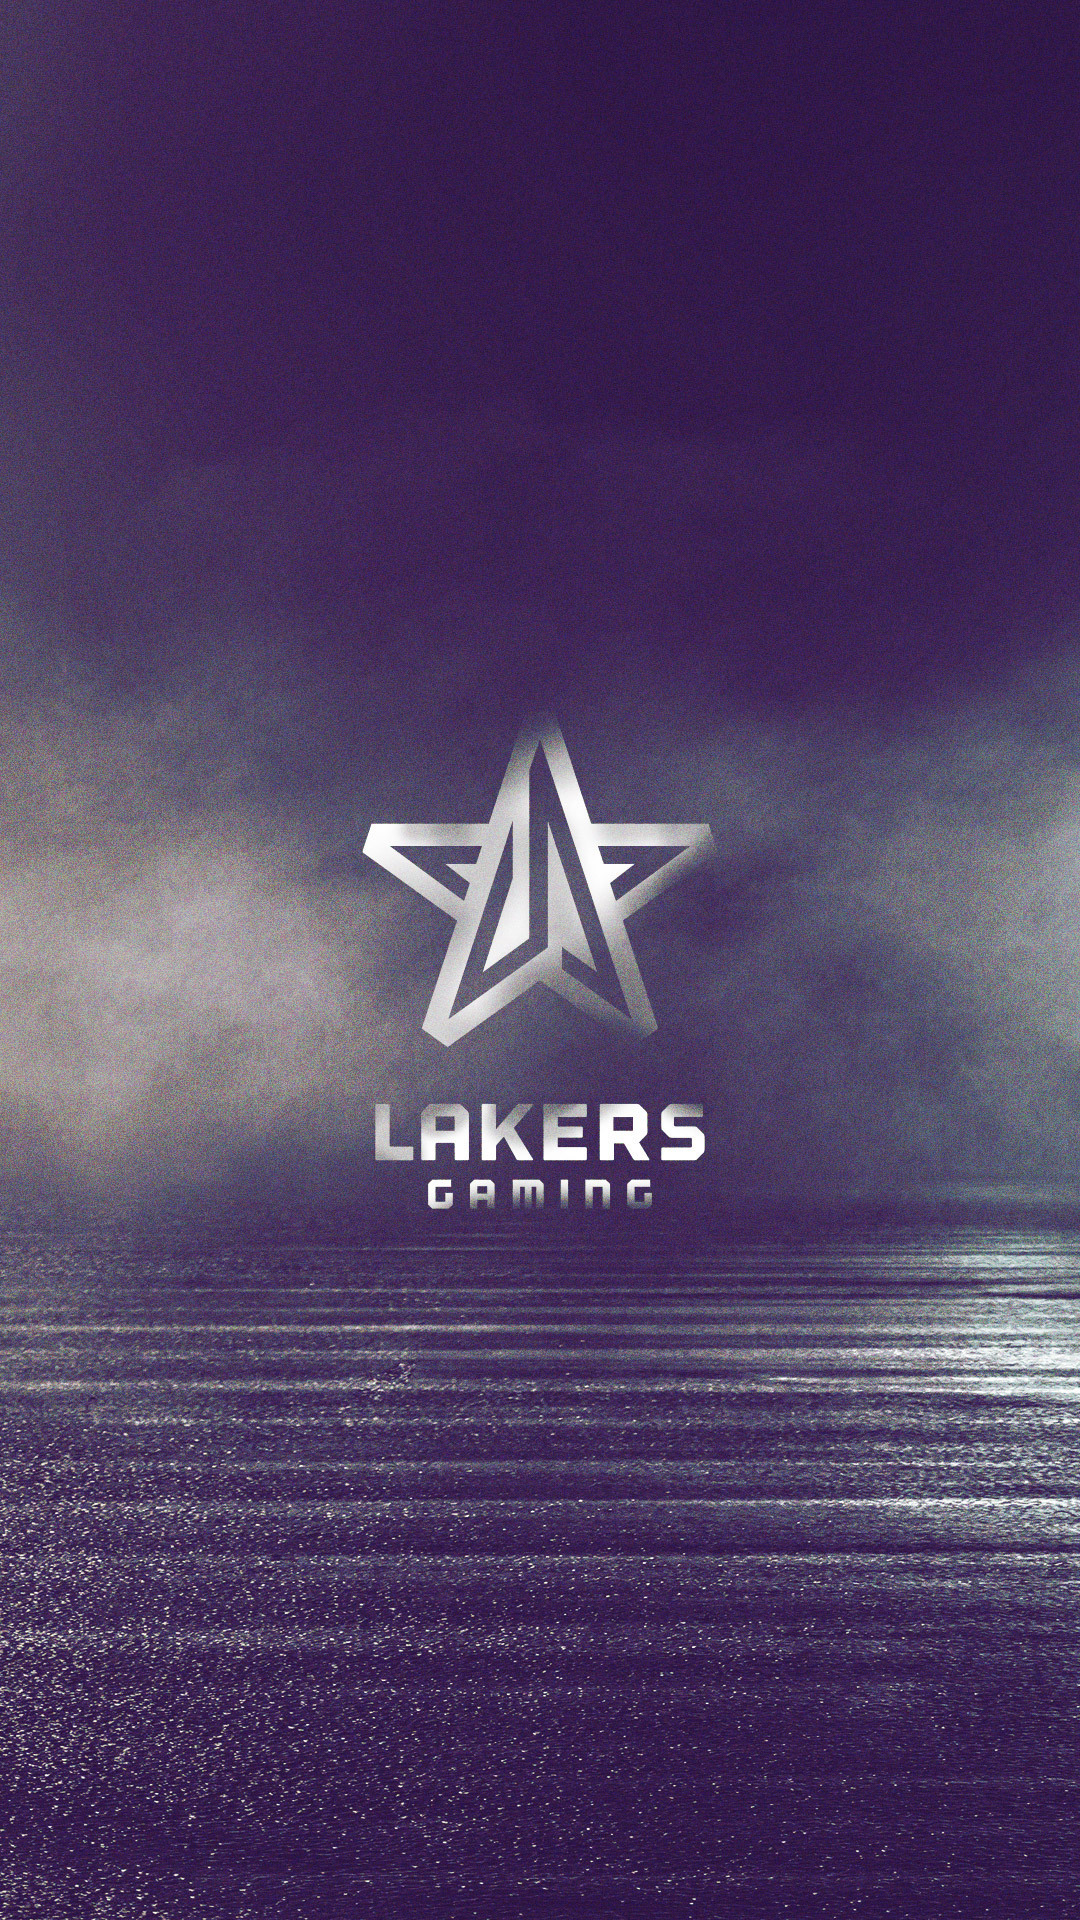 Lakers Gaming Wallpapers